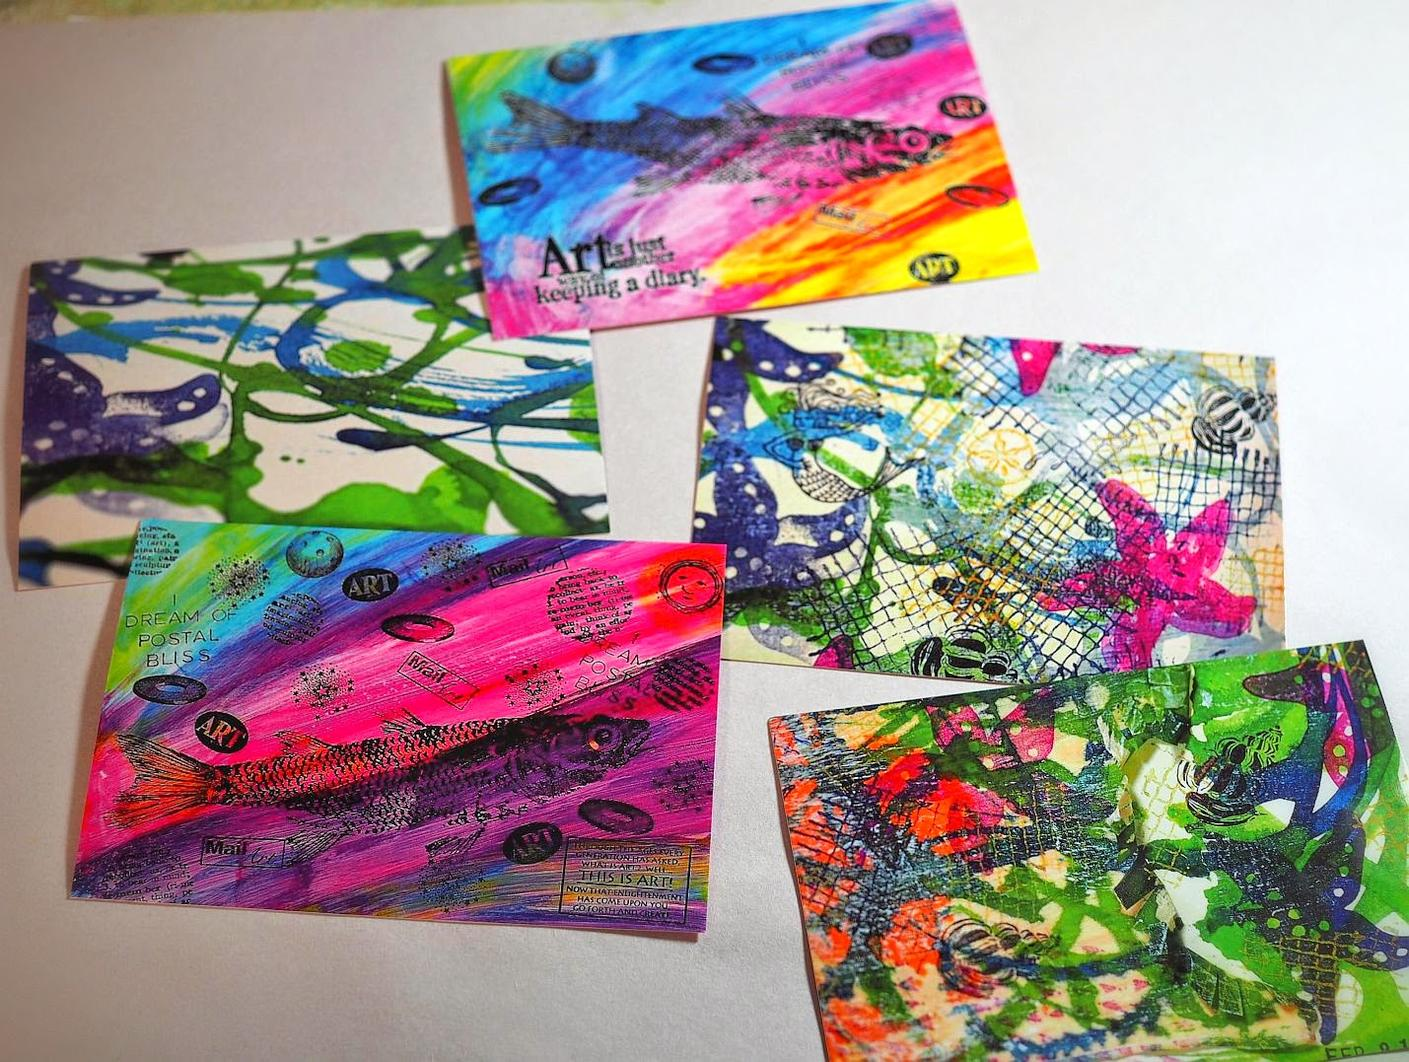 My postcards were images from my art journal - 3 with the starfish, plus copies ofwild Fish Mail Art I had made & sent previously. I made 10 altogether so I had extra to trade.